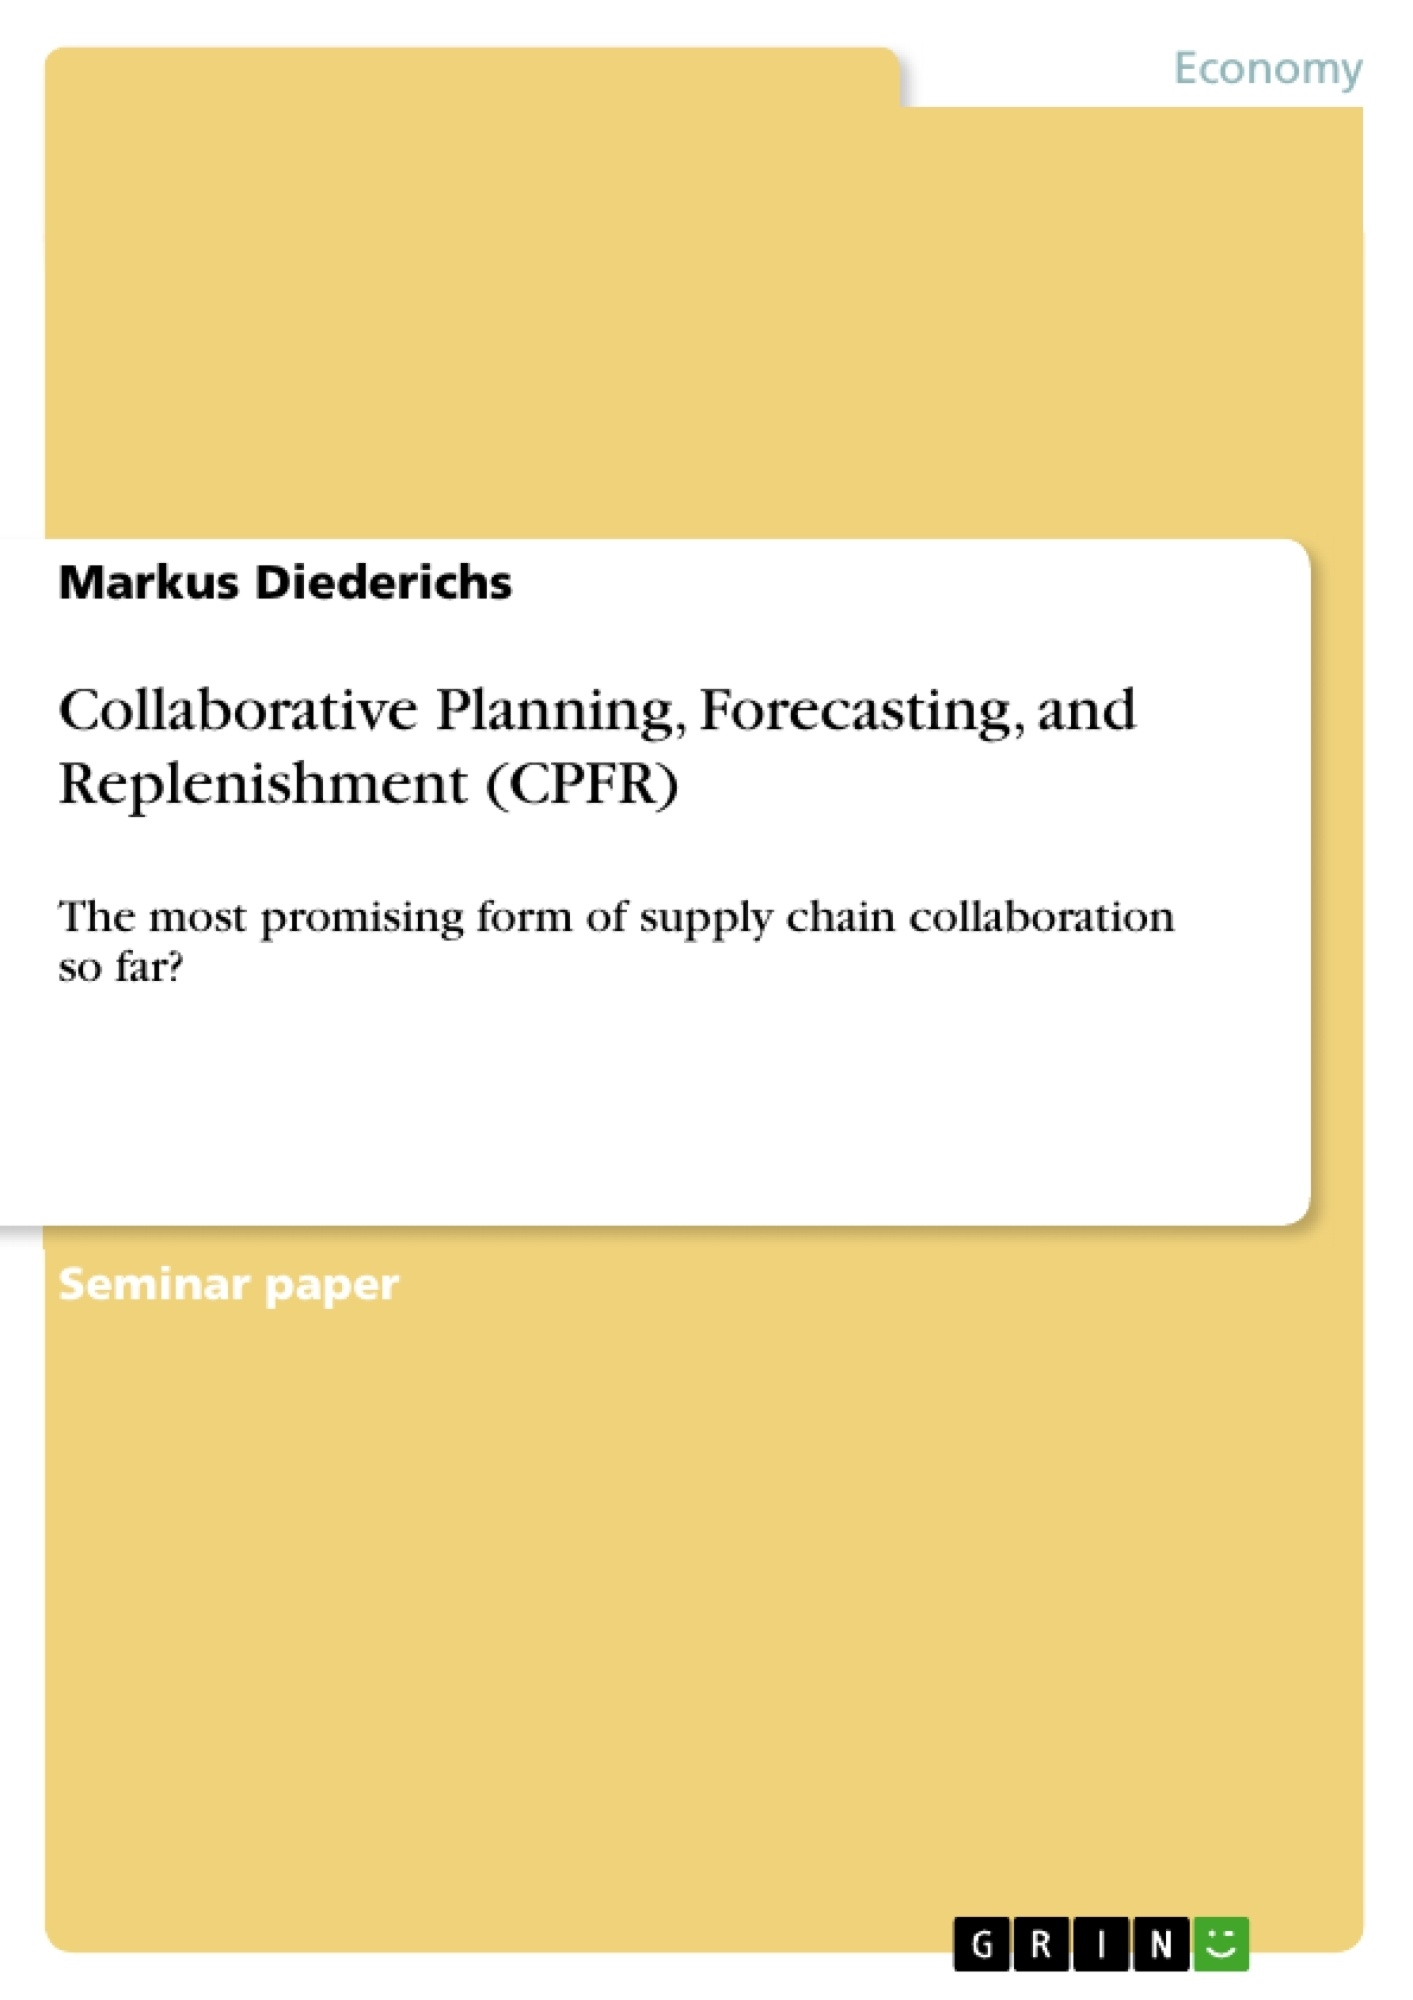 Title: Collaborative Planning, Forecasting, and Replenishment (CPFR)